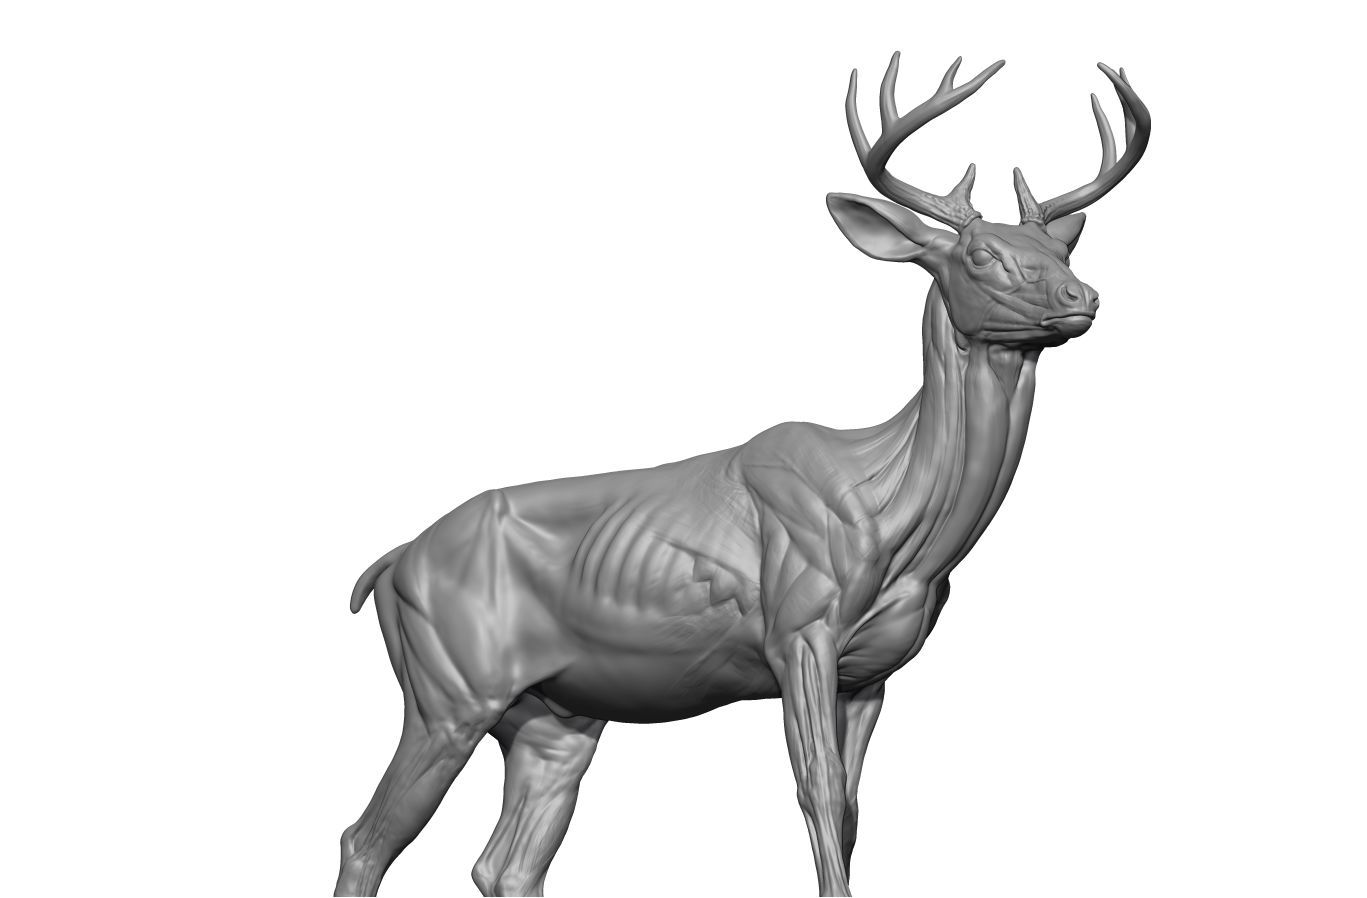 DEER_RENDER2.jpg | Deer-Stag | Pinterest | Anatomy, Animal anatomy ...